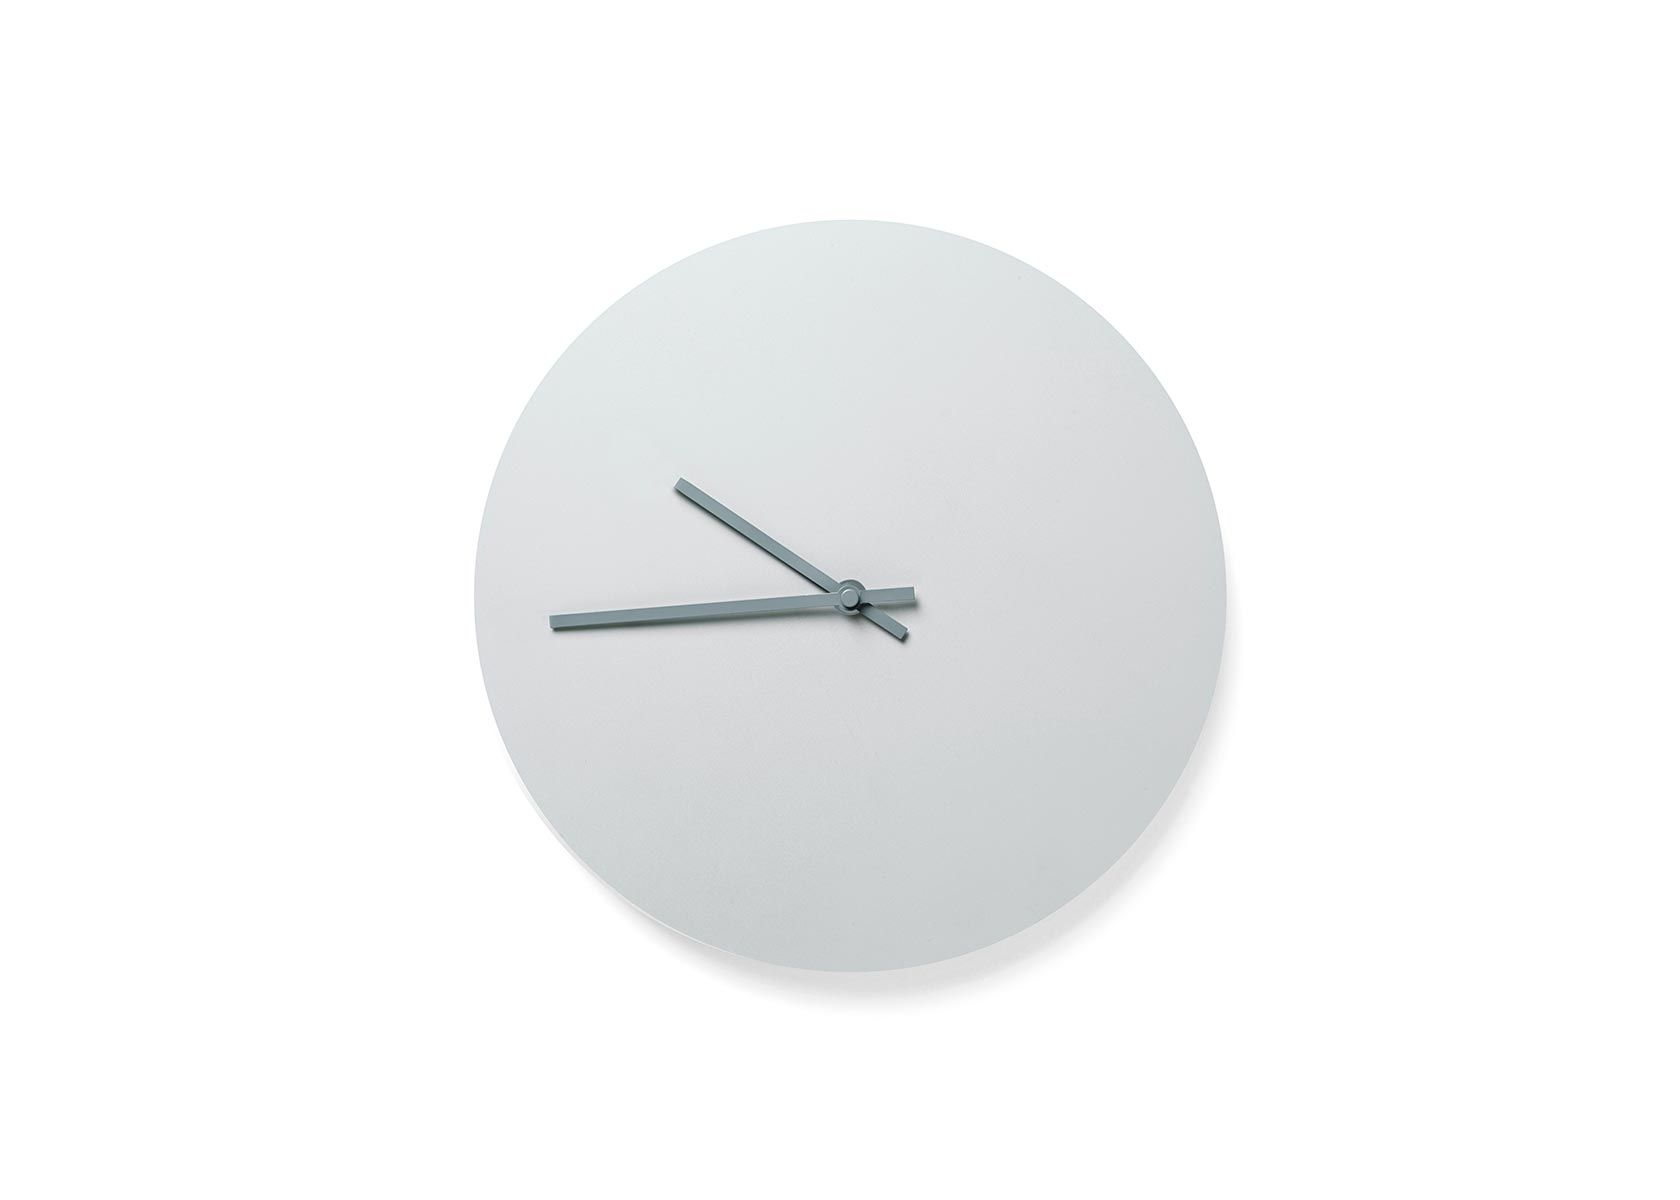 Steel wall clock by norm architects clocks workspace grey steel wall clock by norm architects clocks workspace amipublicfo Images